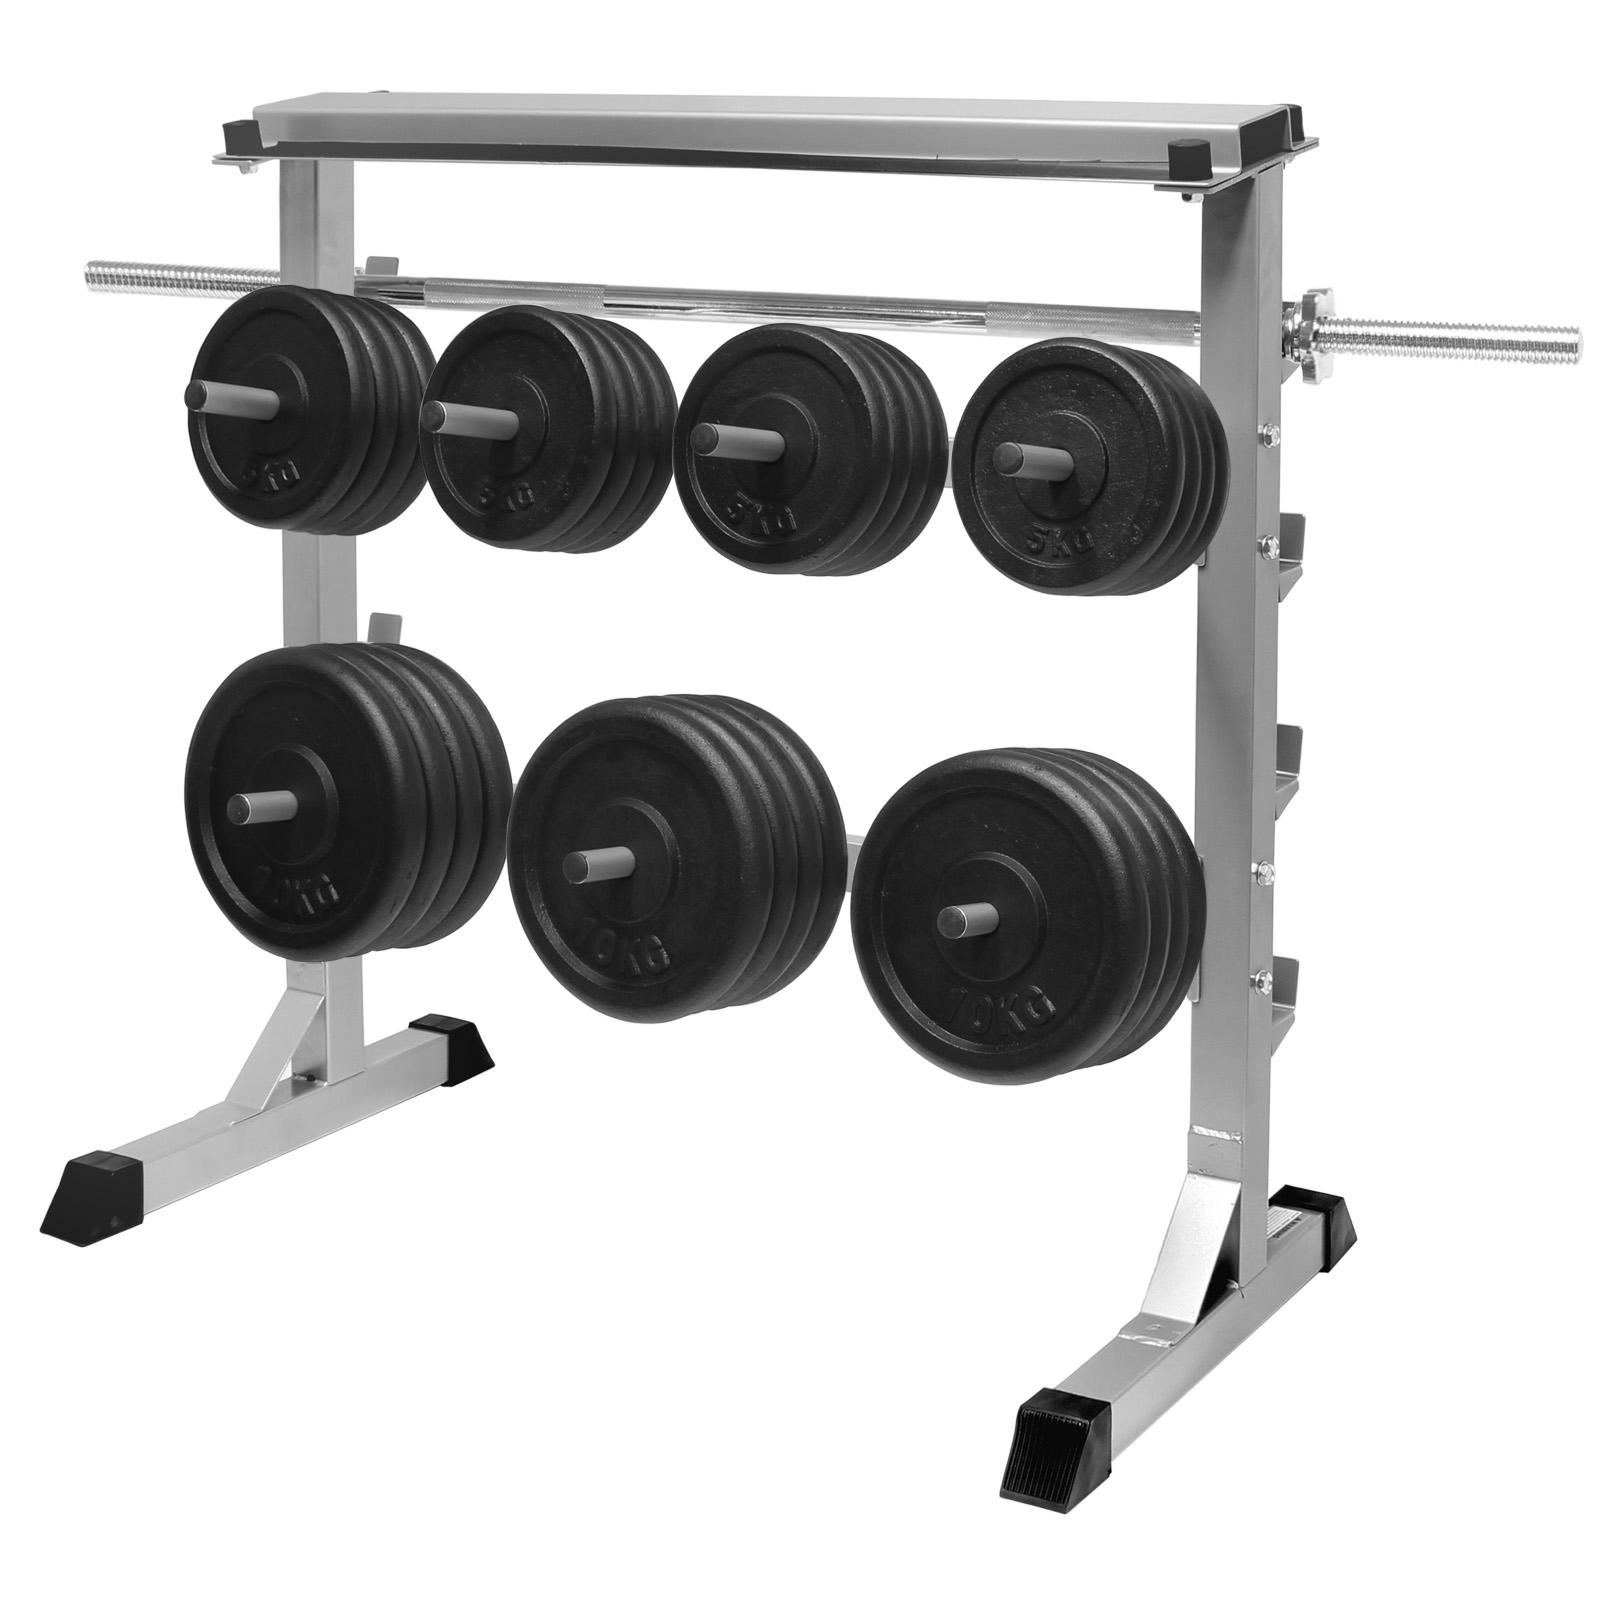 MIRAFIT 300kg Gym Weight Plate & Bar Rack Storage Stand